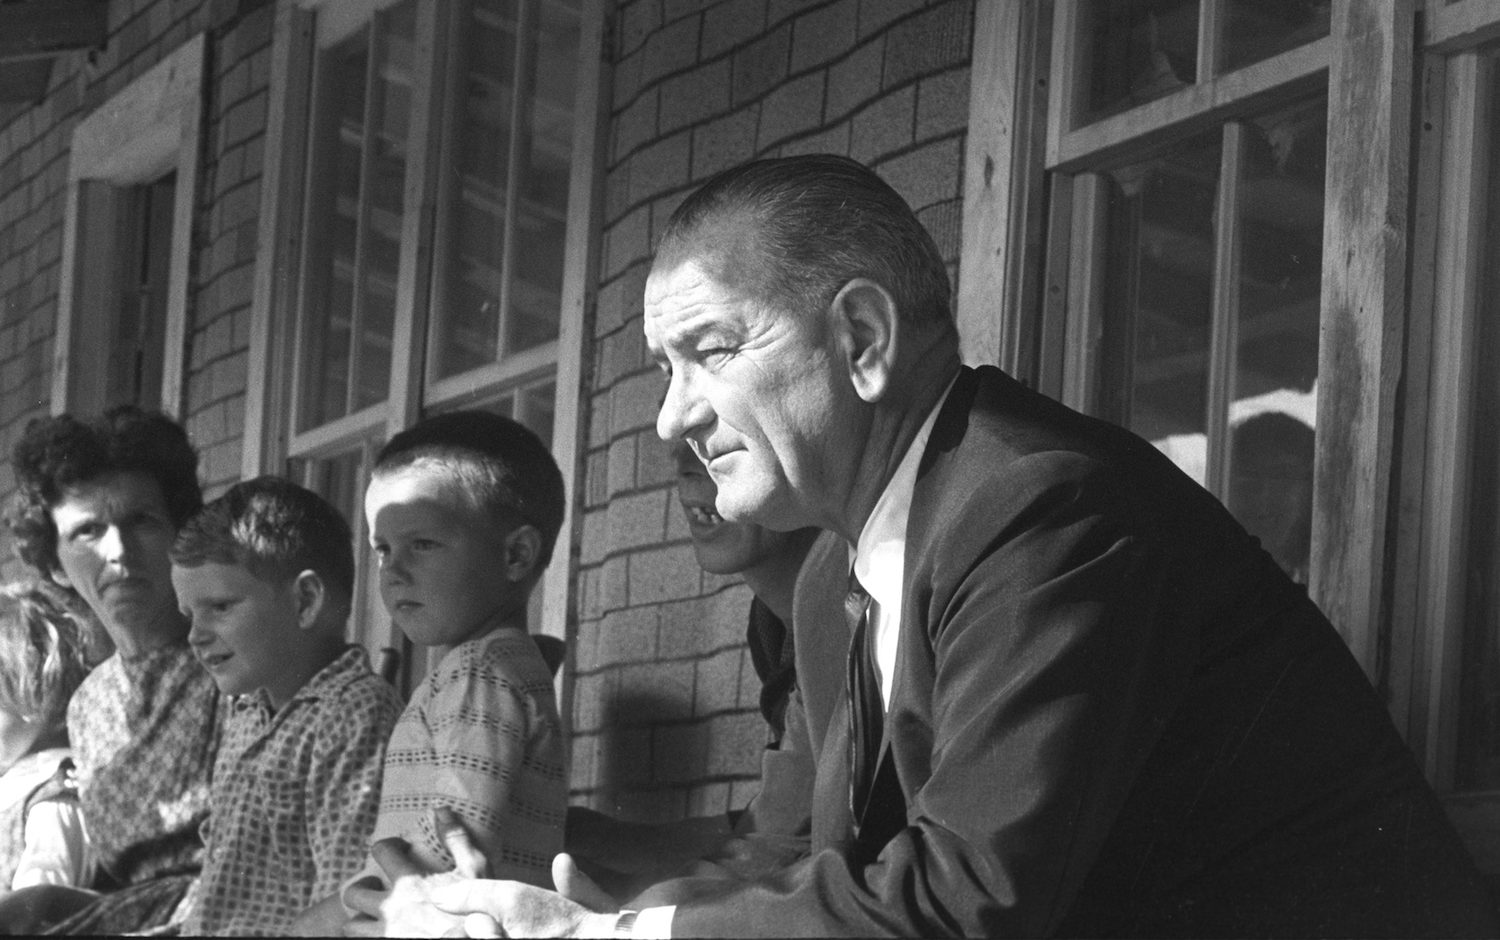 (President Lyndon B. Johnson visit to Tom Fletcher residence during Poverty Tour of Appalachia. Serial Number: 215-21-WH64. Date: 04/24/1964. Credit: LBJ Library photo by Cecil Stoughton.)